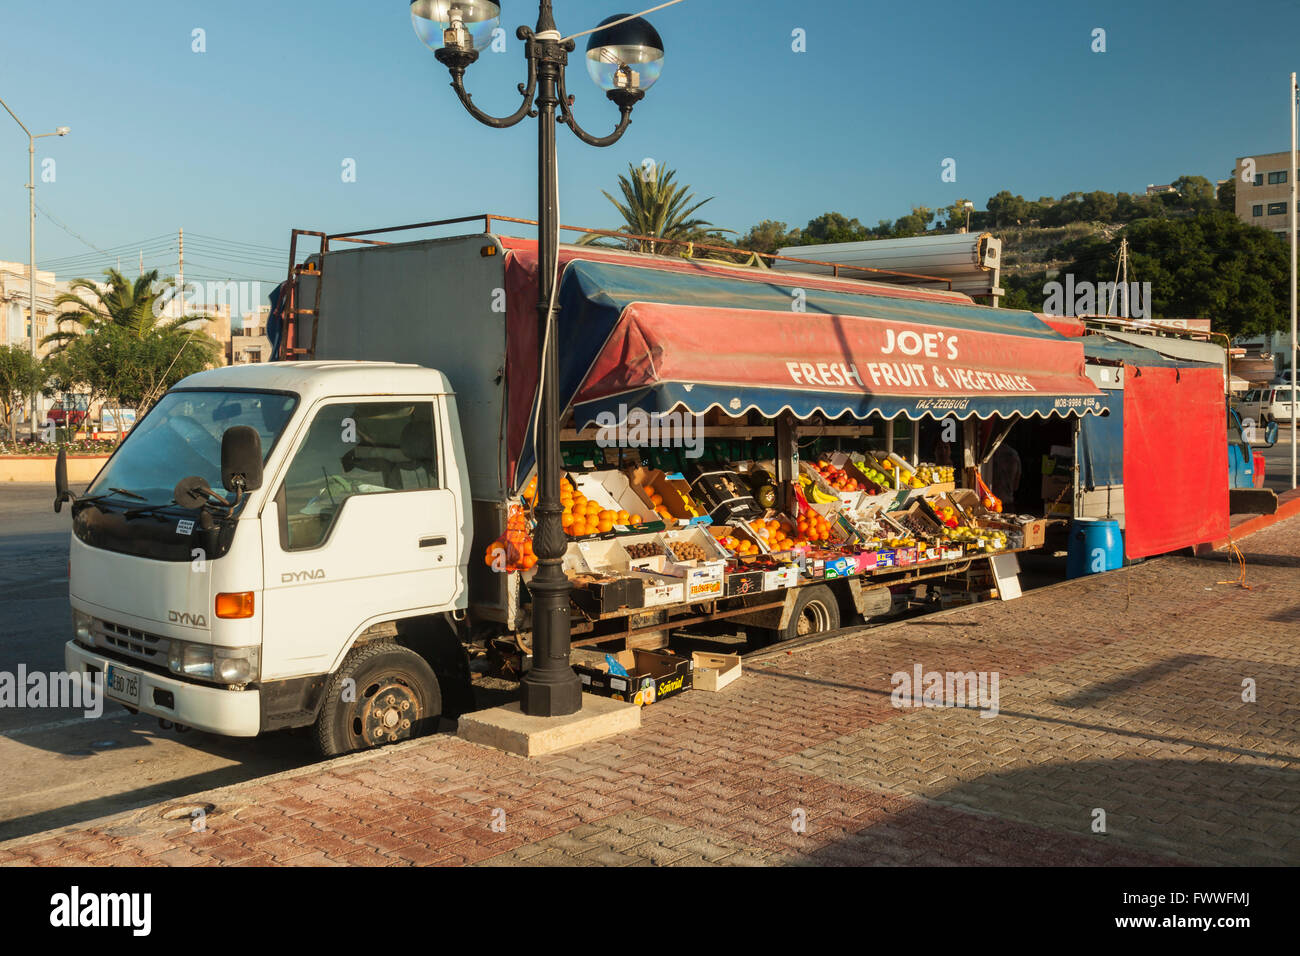 Image result for malta produce truck